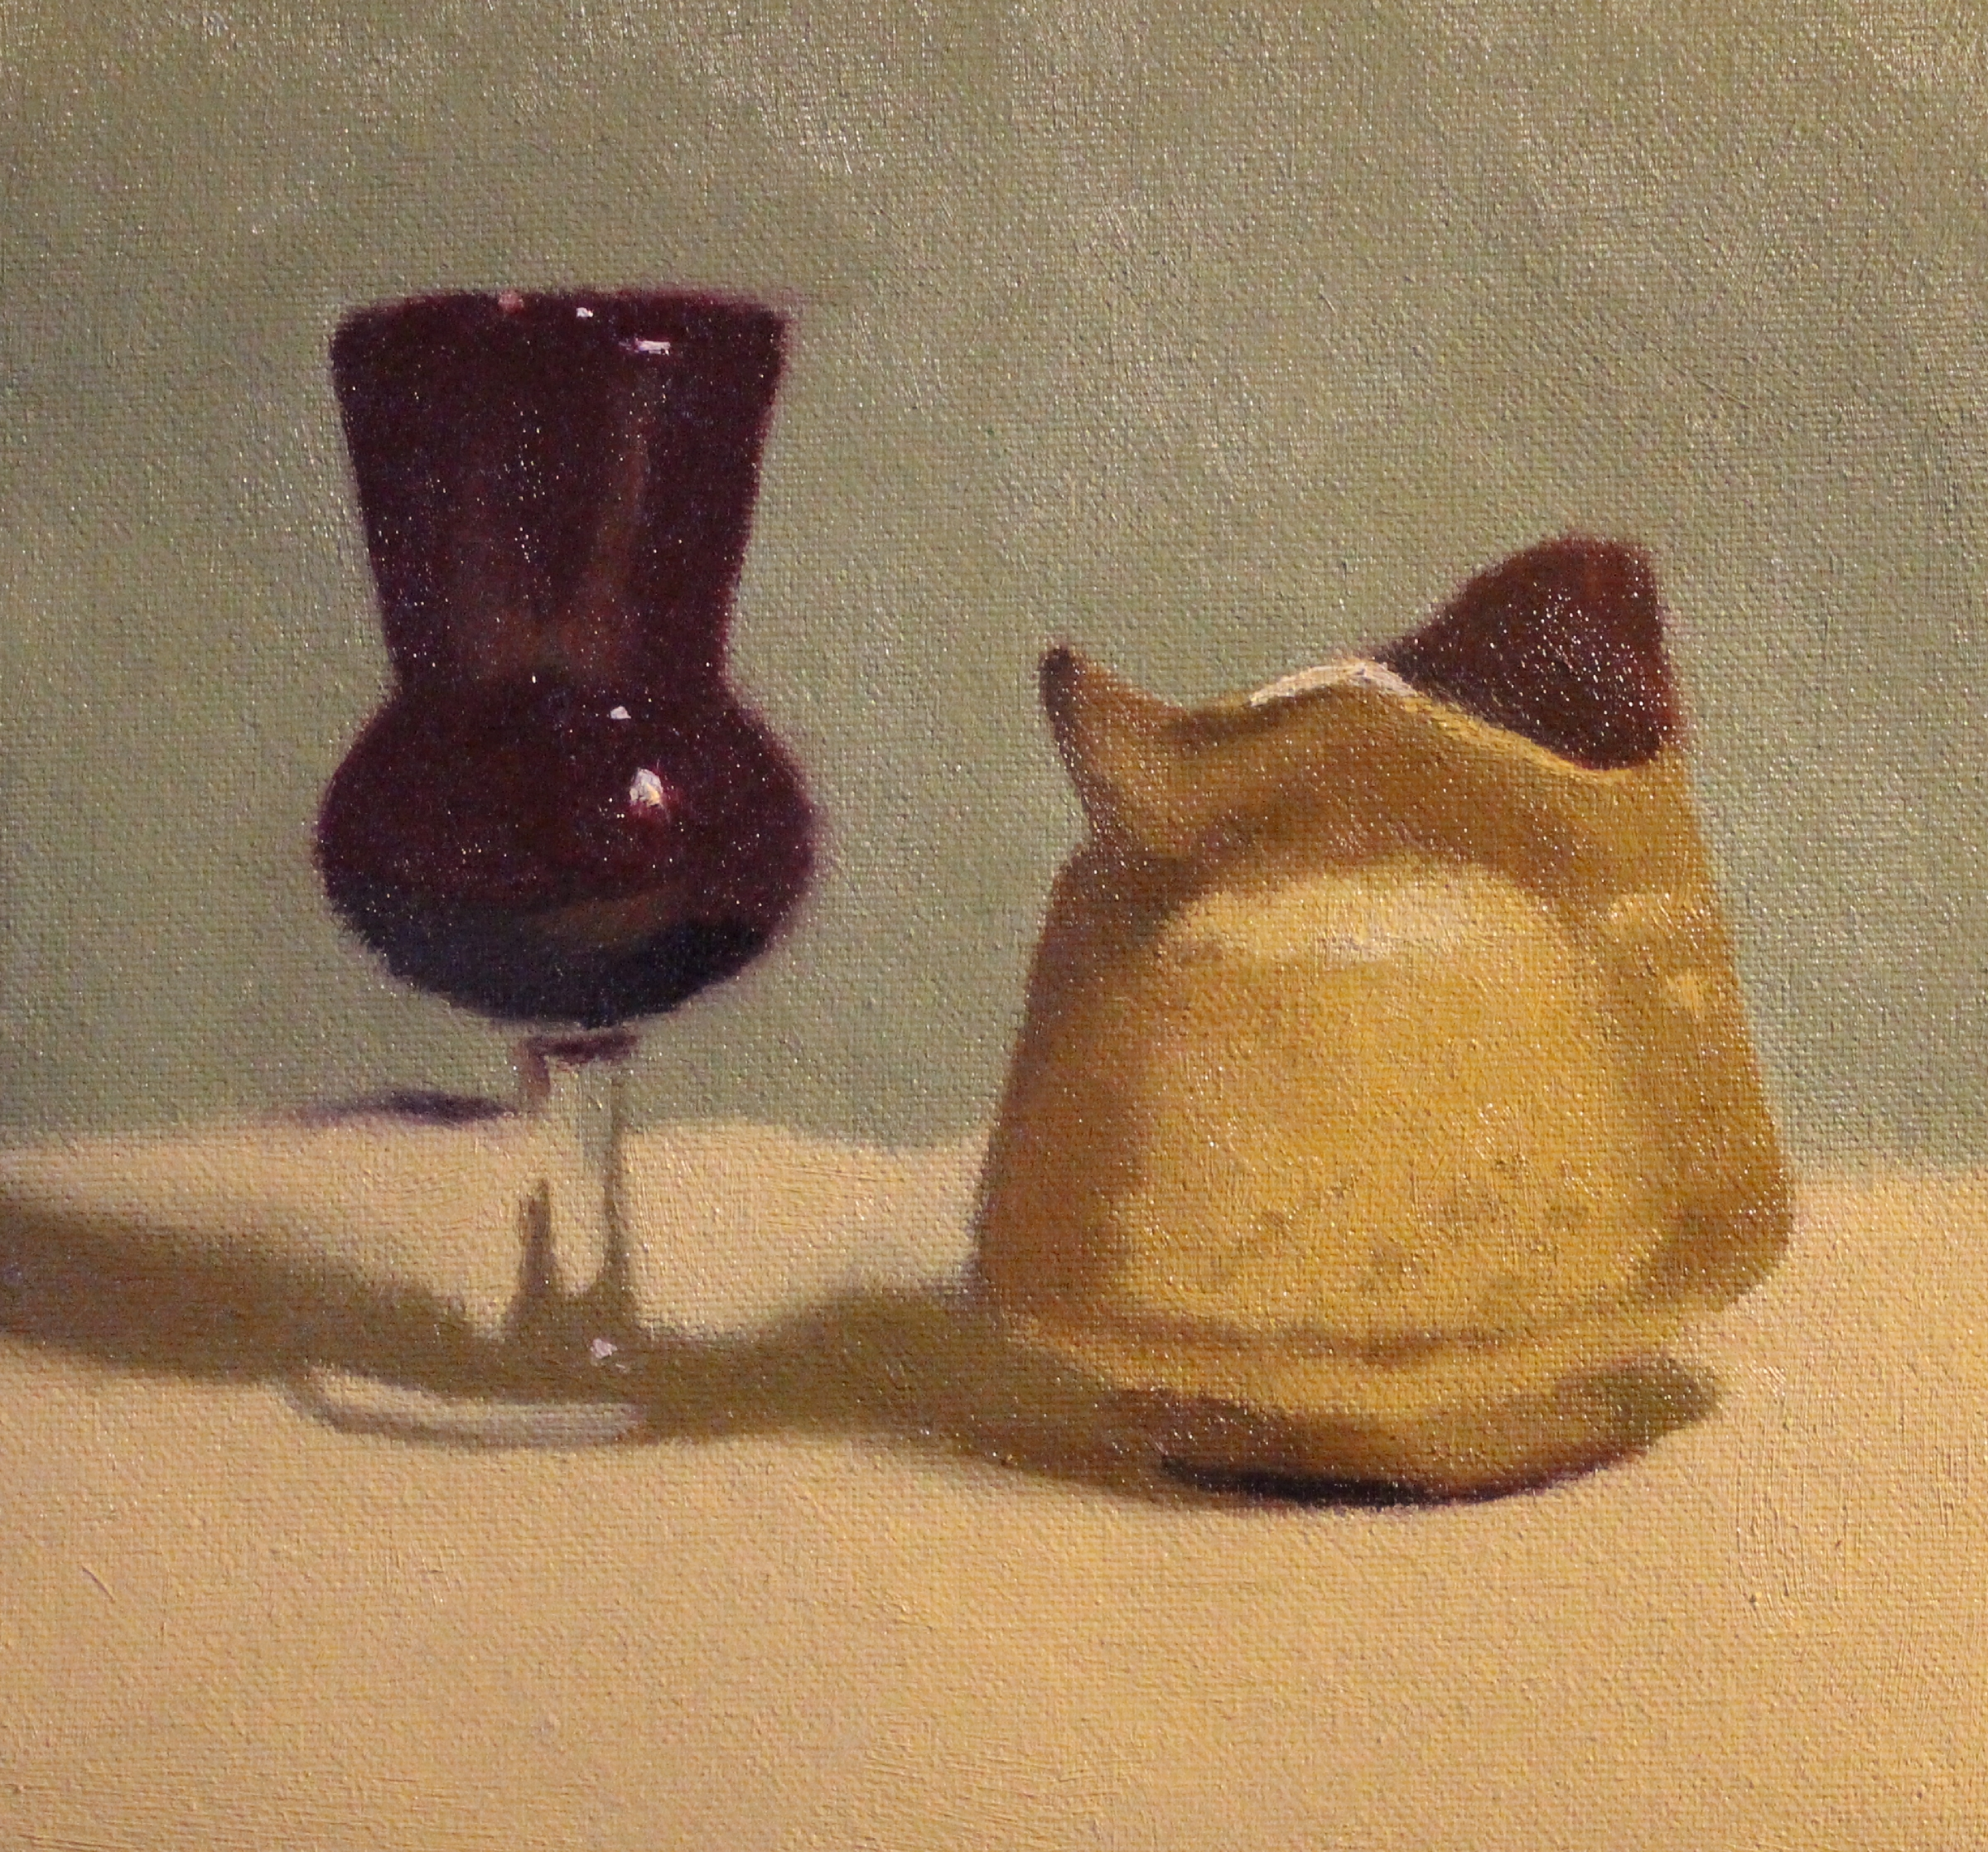 Red glass and milk jug